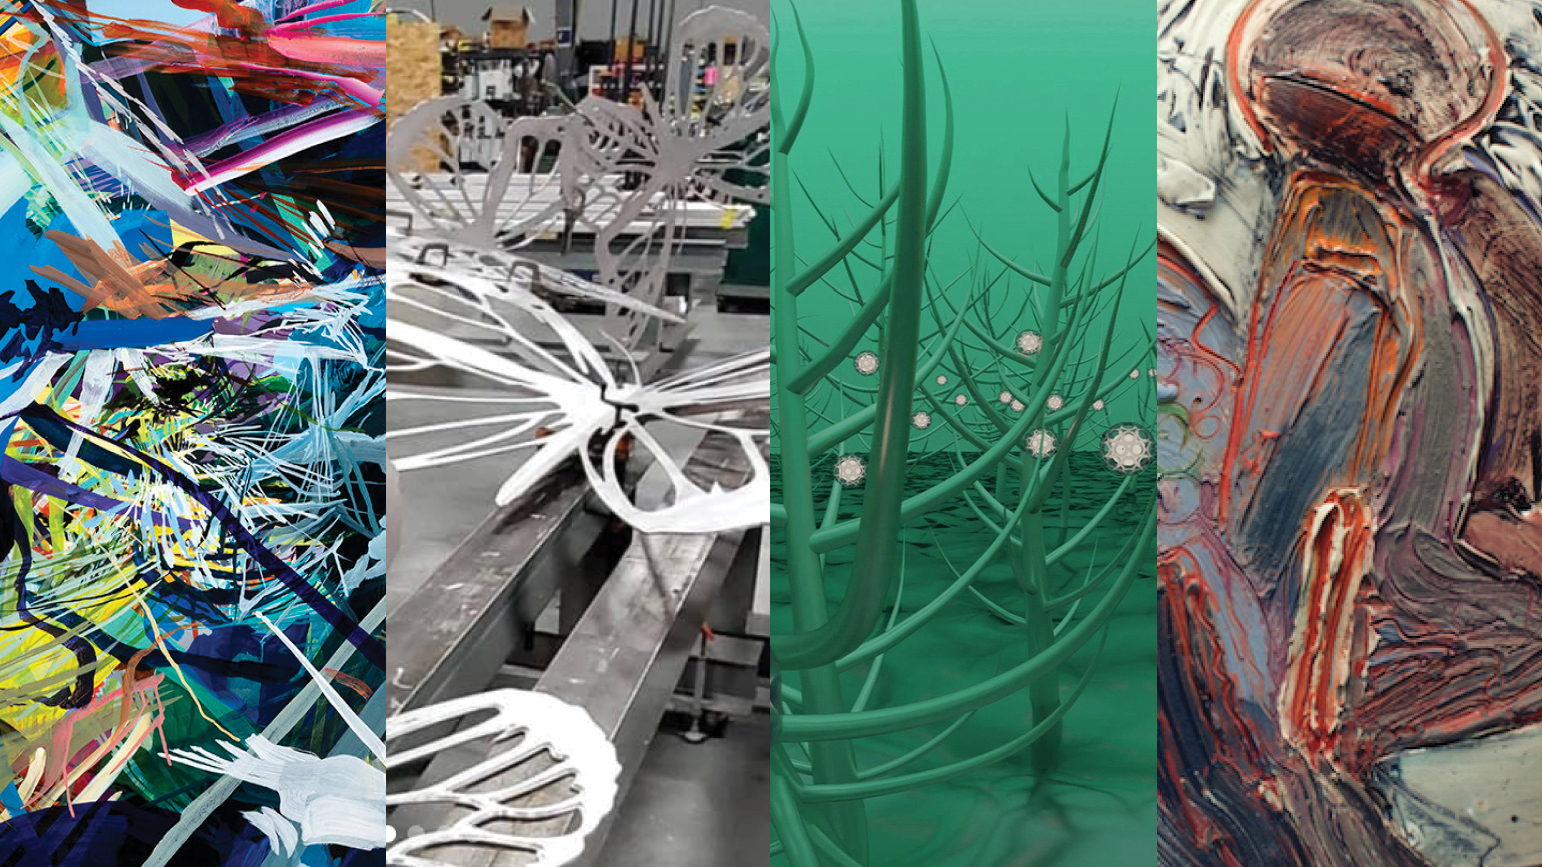 Four images: 1. Abstract painting; 2. Metal sculptures of butterflies; 3. Abstract digital image of nature; 4. Abstract ceramic work